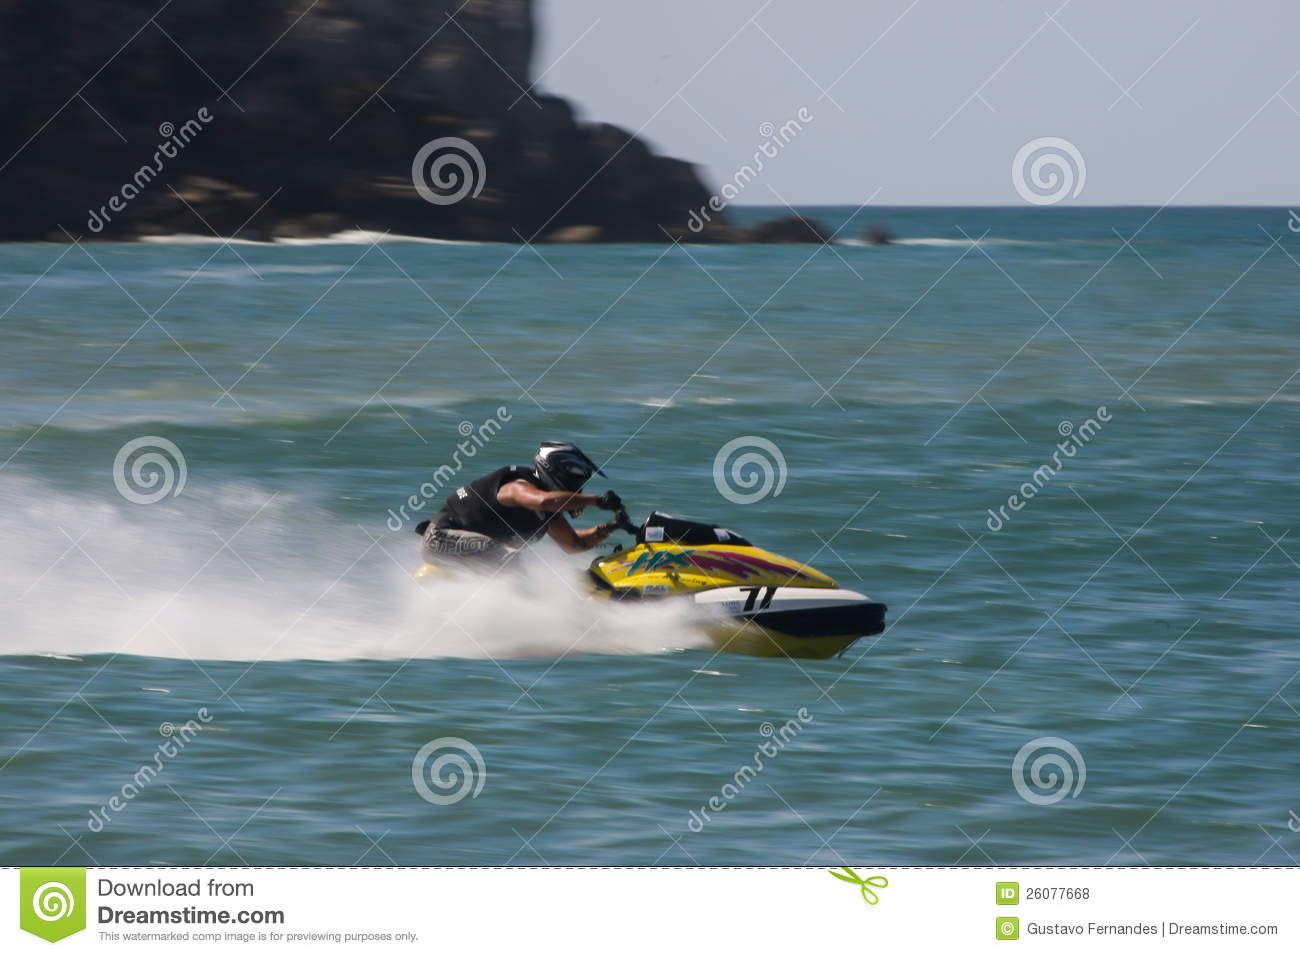 joao sousa in gran prix of jet ski 2012 editorial stock photo image of nautical belgrade. Black Bedroom Furniture Sets. Home Design Ideas